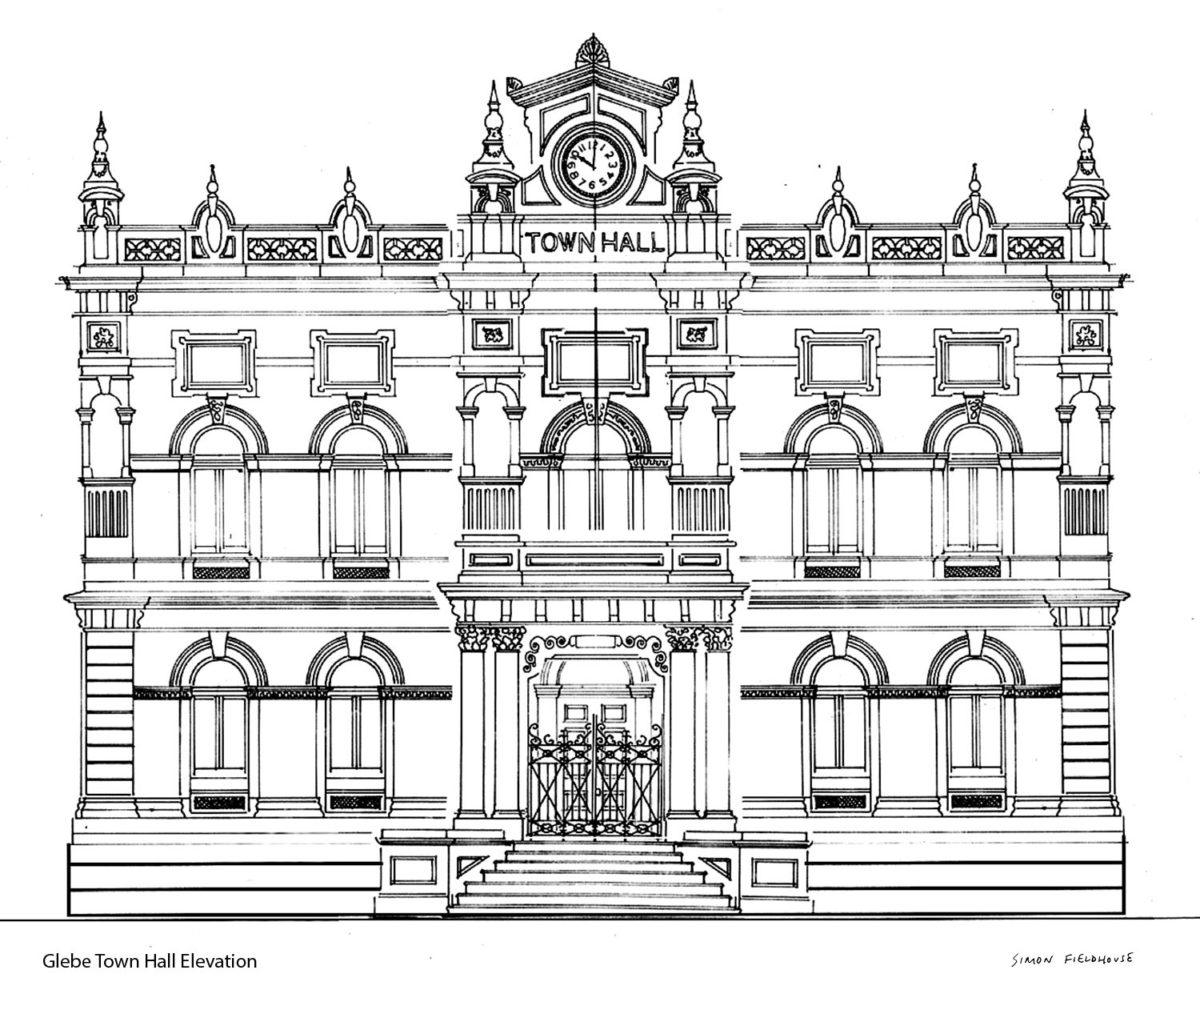 Glebe Towh Hall elevation